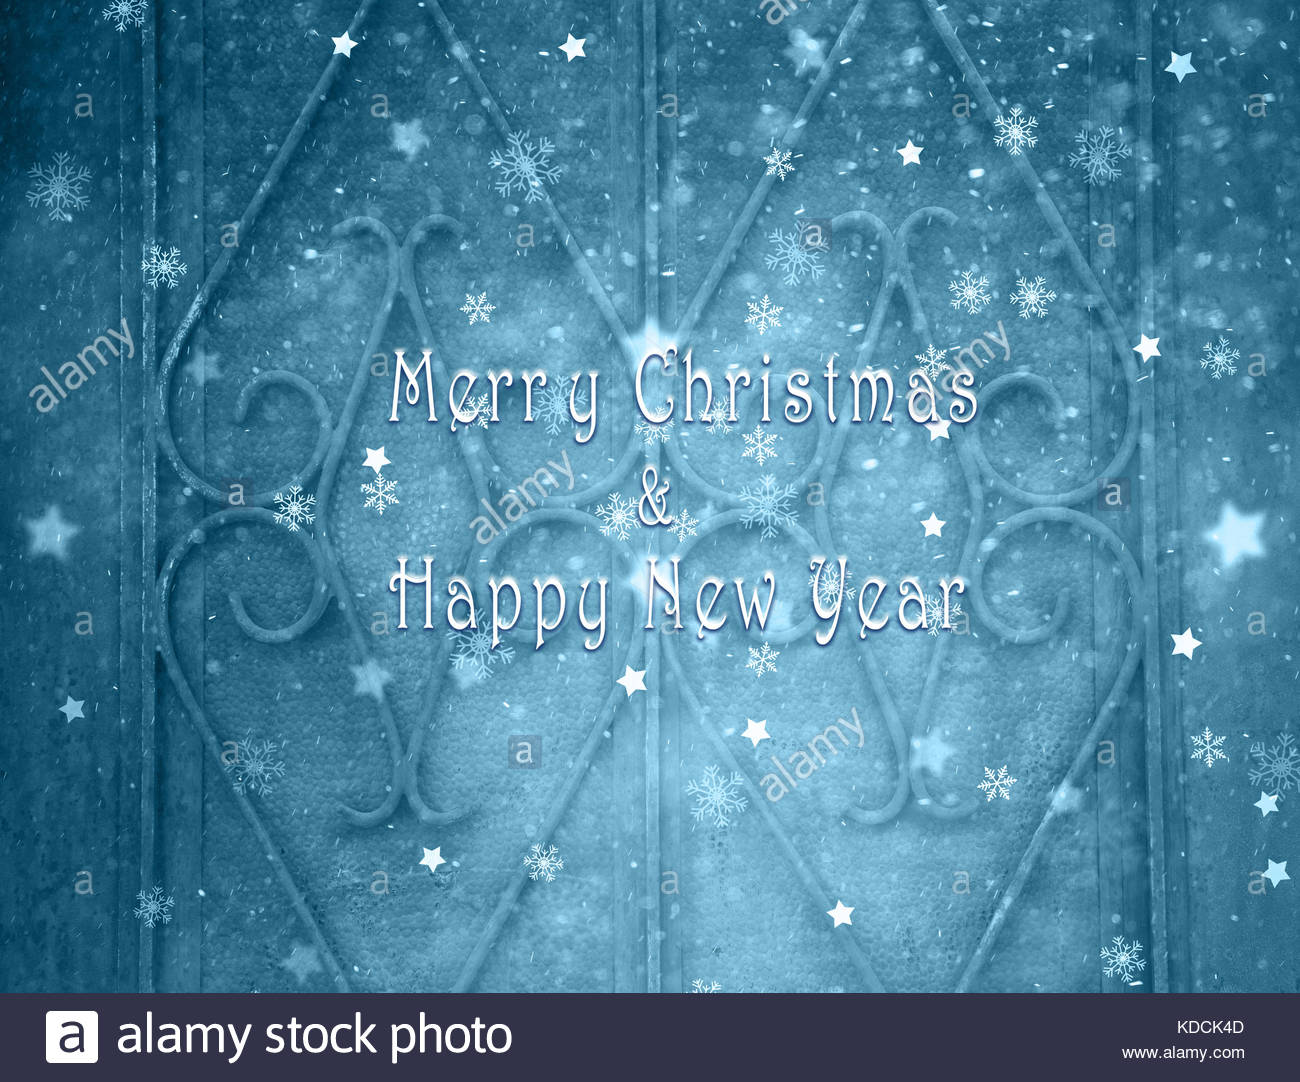 merry christmas and happy new year greeting card message on old house door details background with illustrated snowfall snowy winter new year and chr